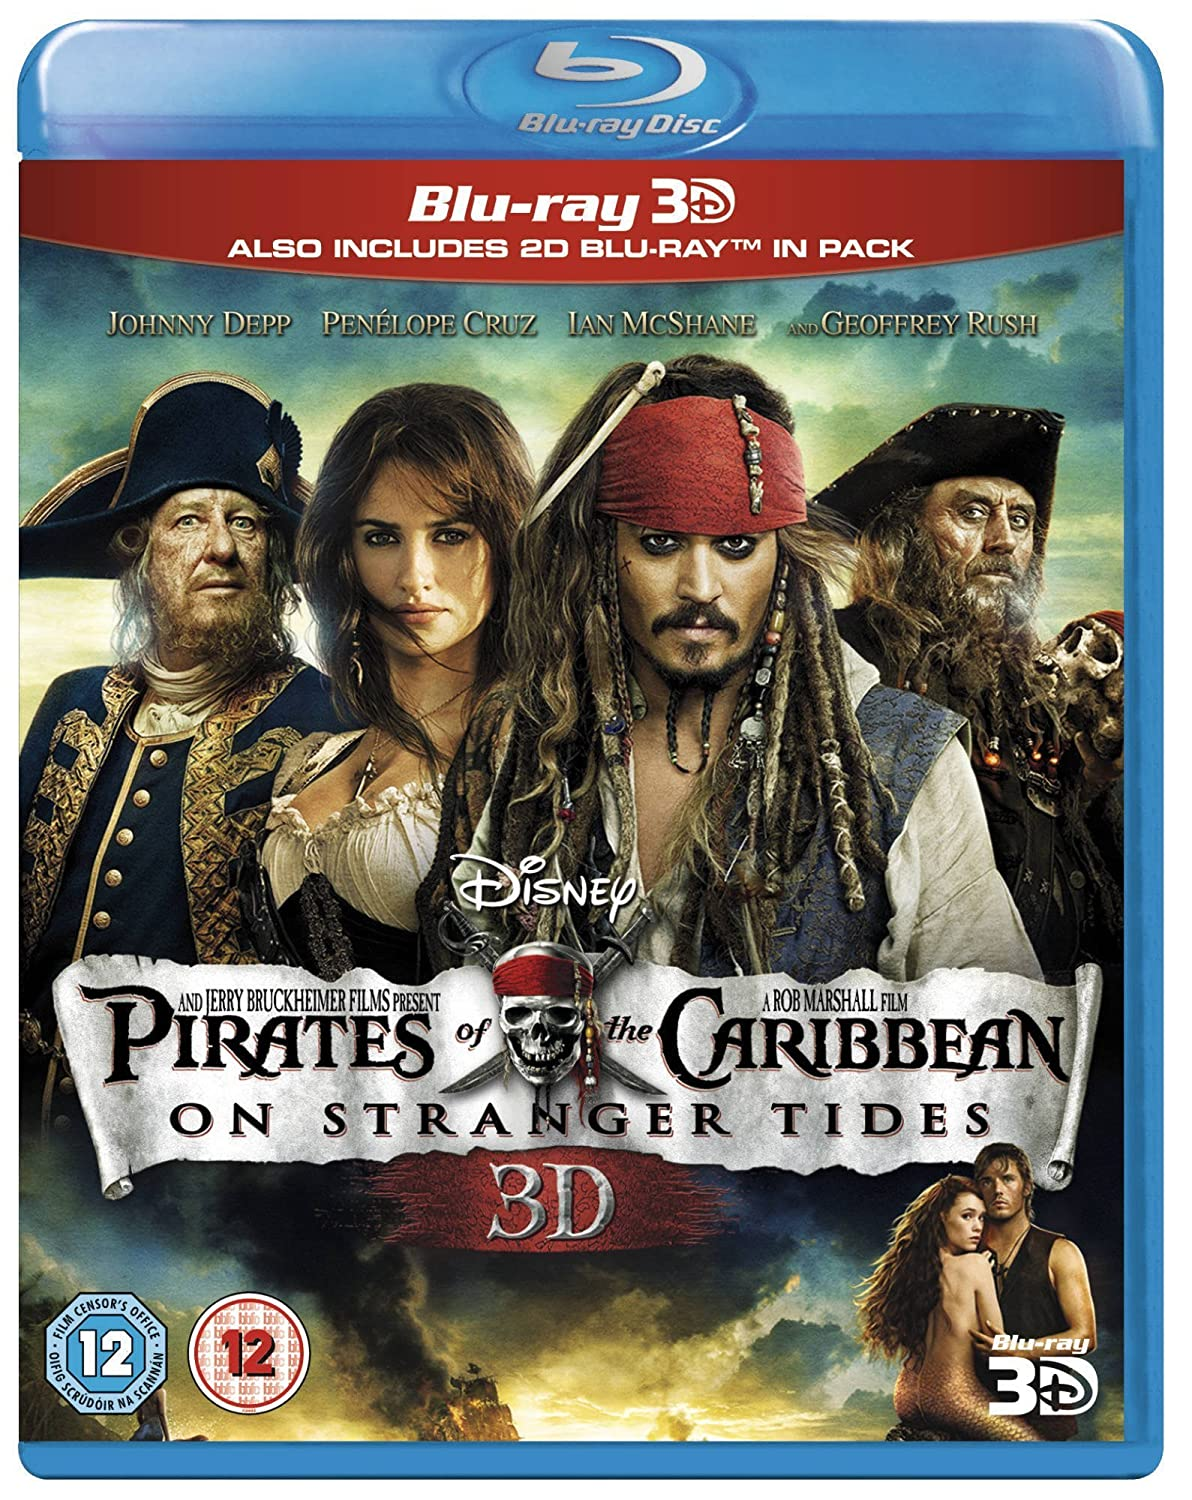 POTC On Stranger Tides 3D BD [Reino Unido] [Blu-ray]: Amazon.es ...